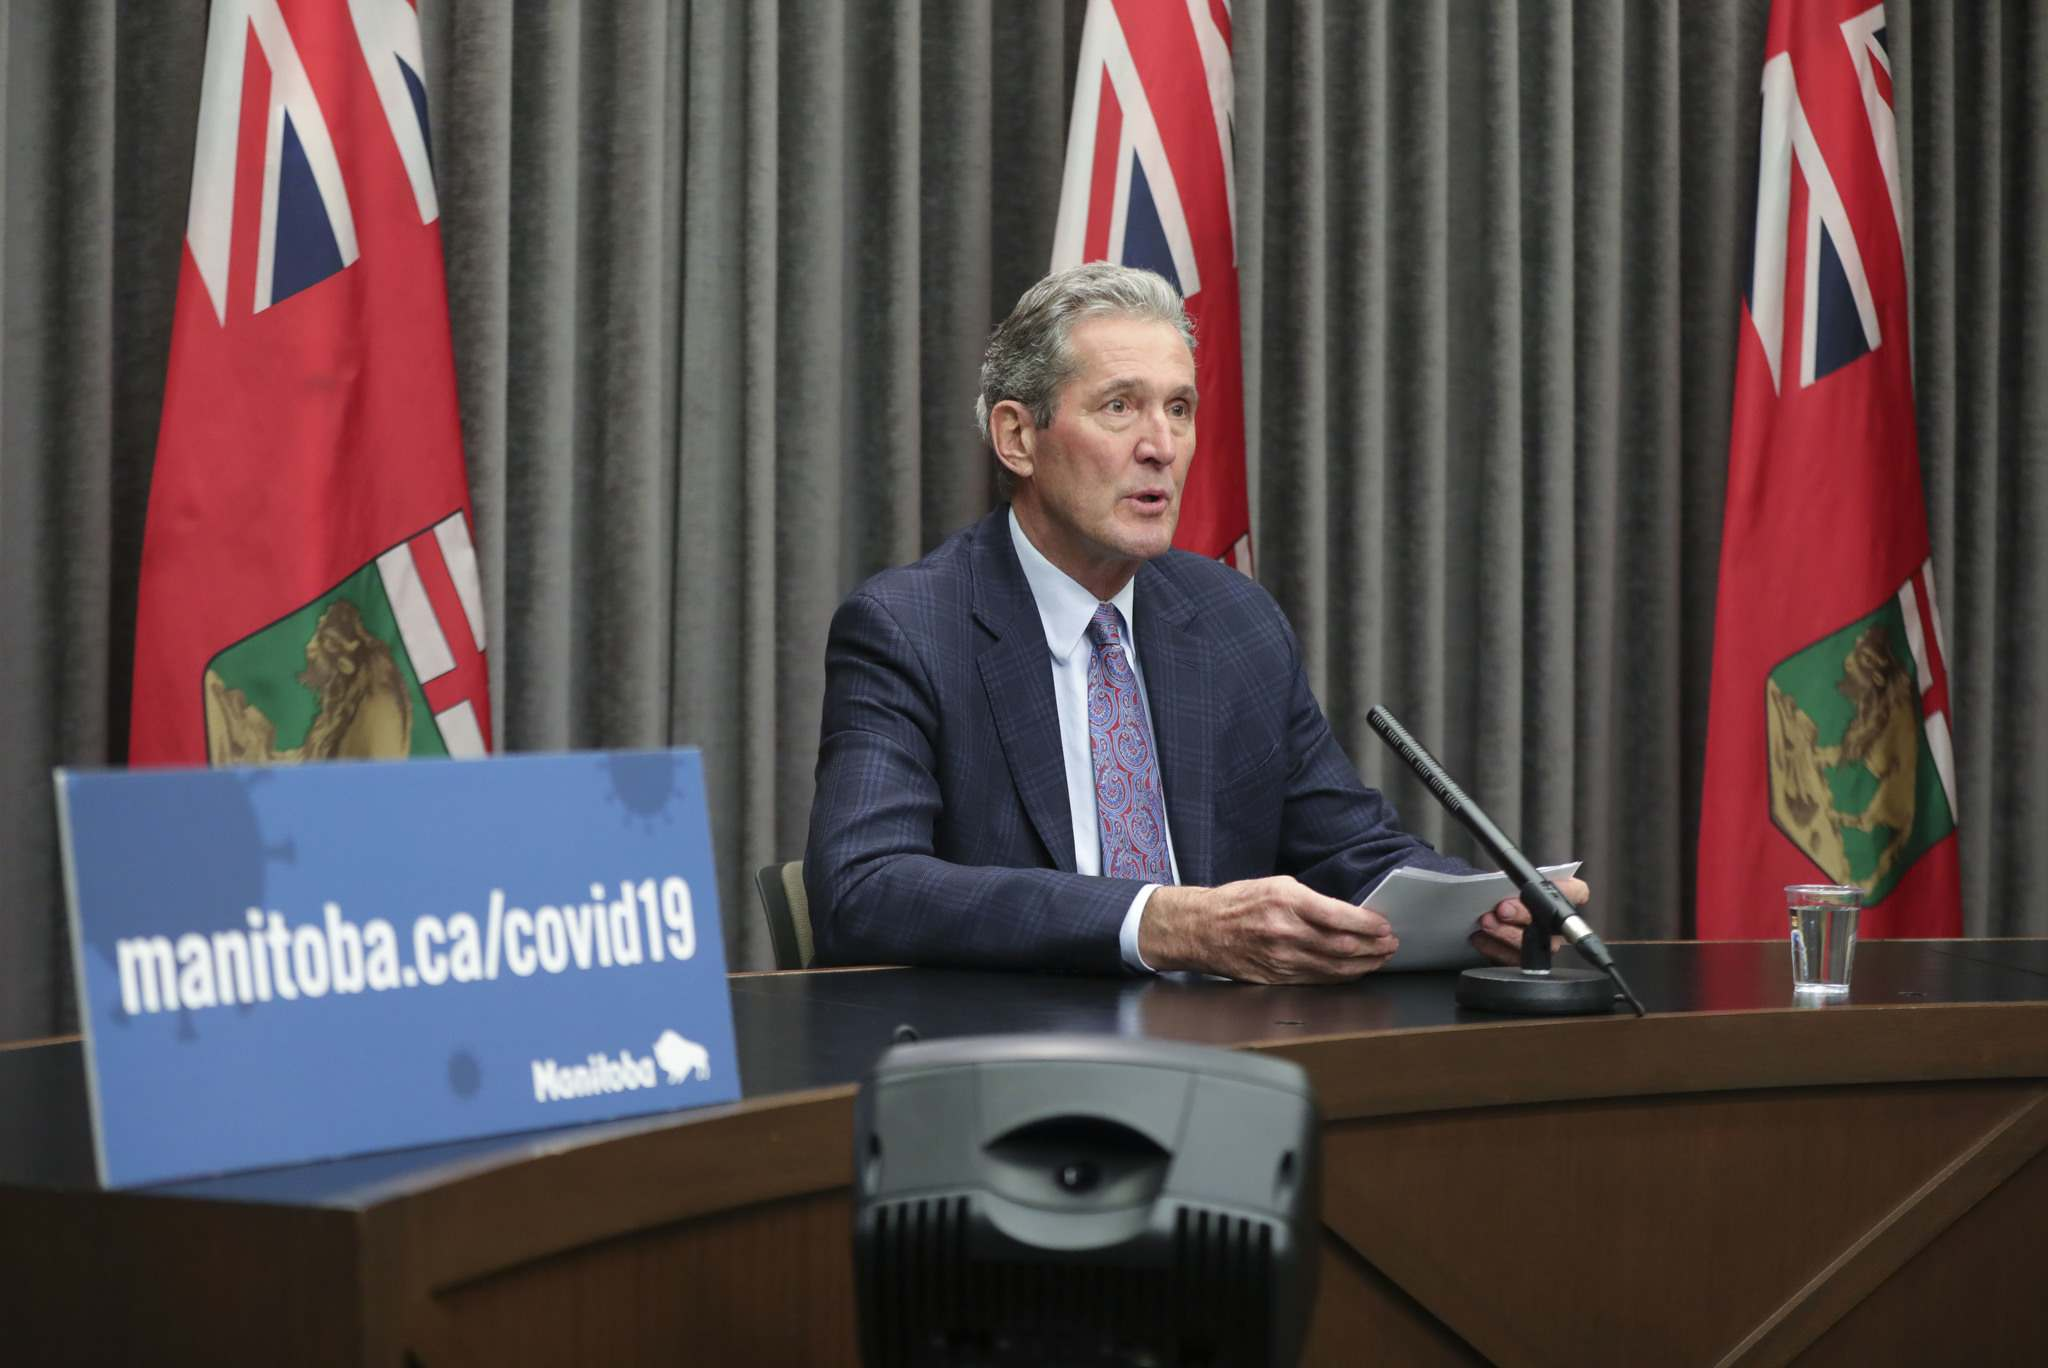 </p><p>Manitoba Premier Brian Pallister is using his aversion to debt to justify cuts to education and the civil service, but those are hardly significant when set against the scope of the economic damage from pandemic. (Ruth Bonneville / Winnipeg Free Press files)</p>